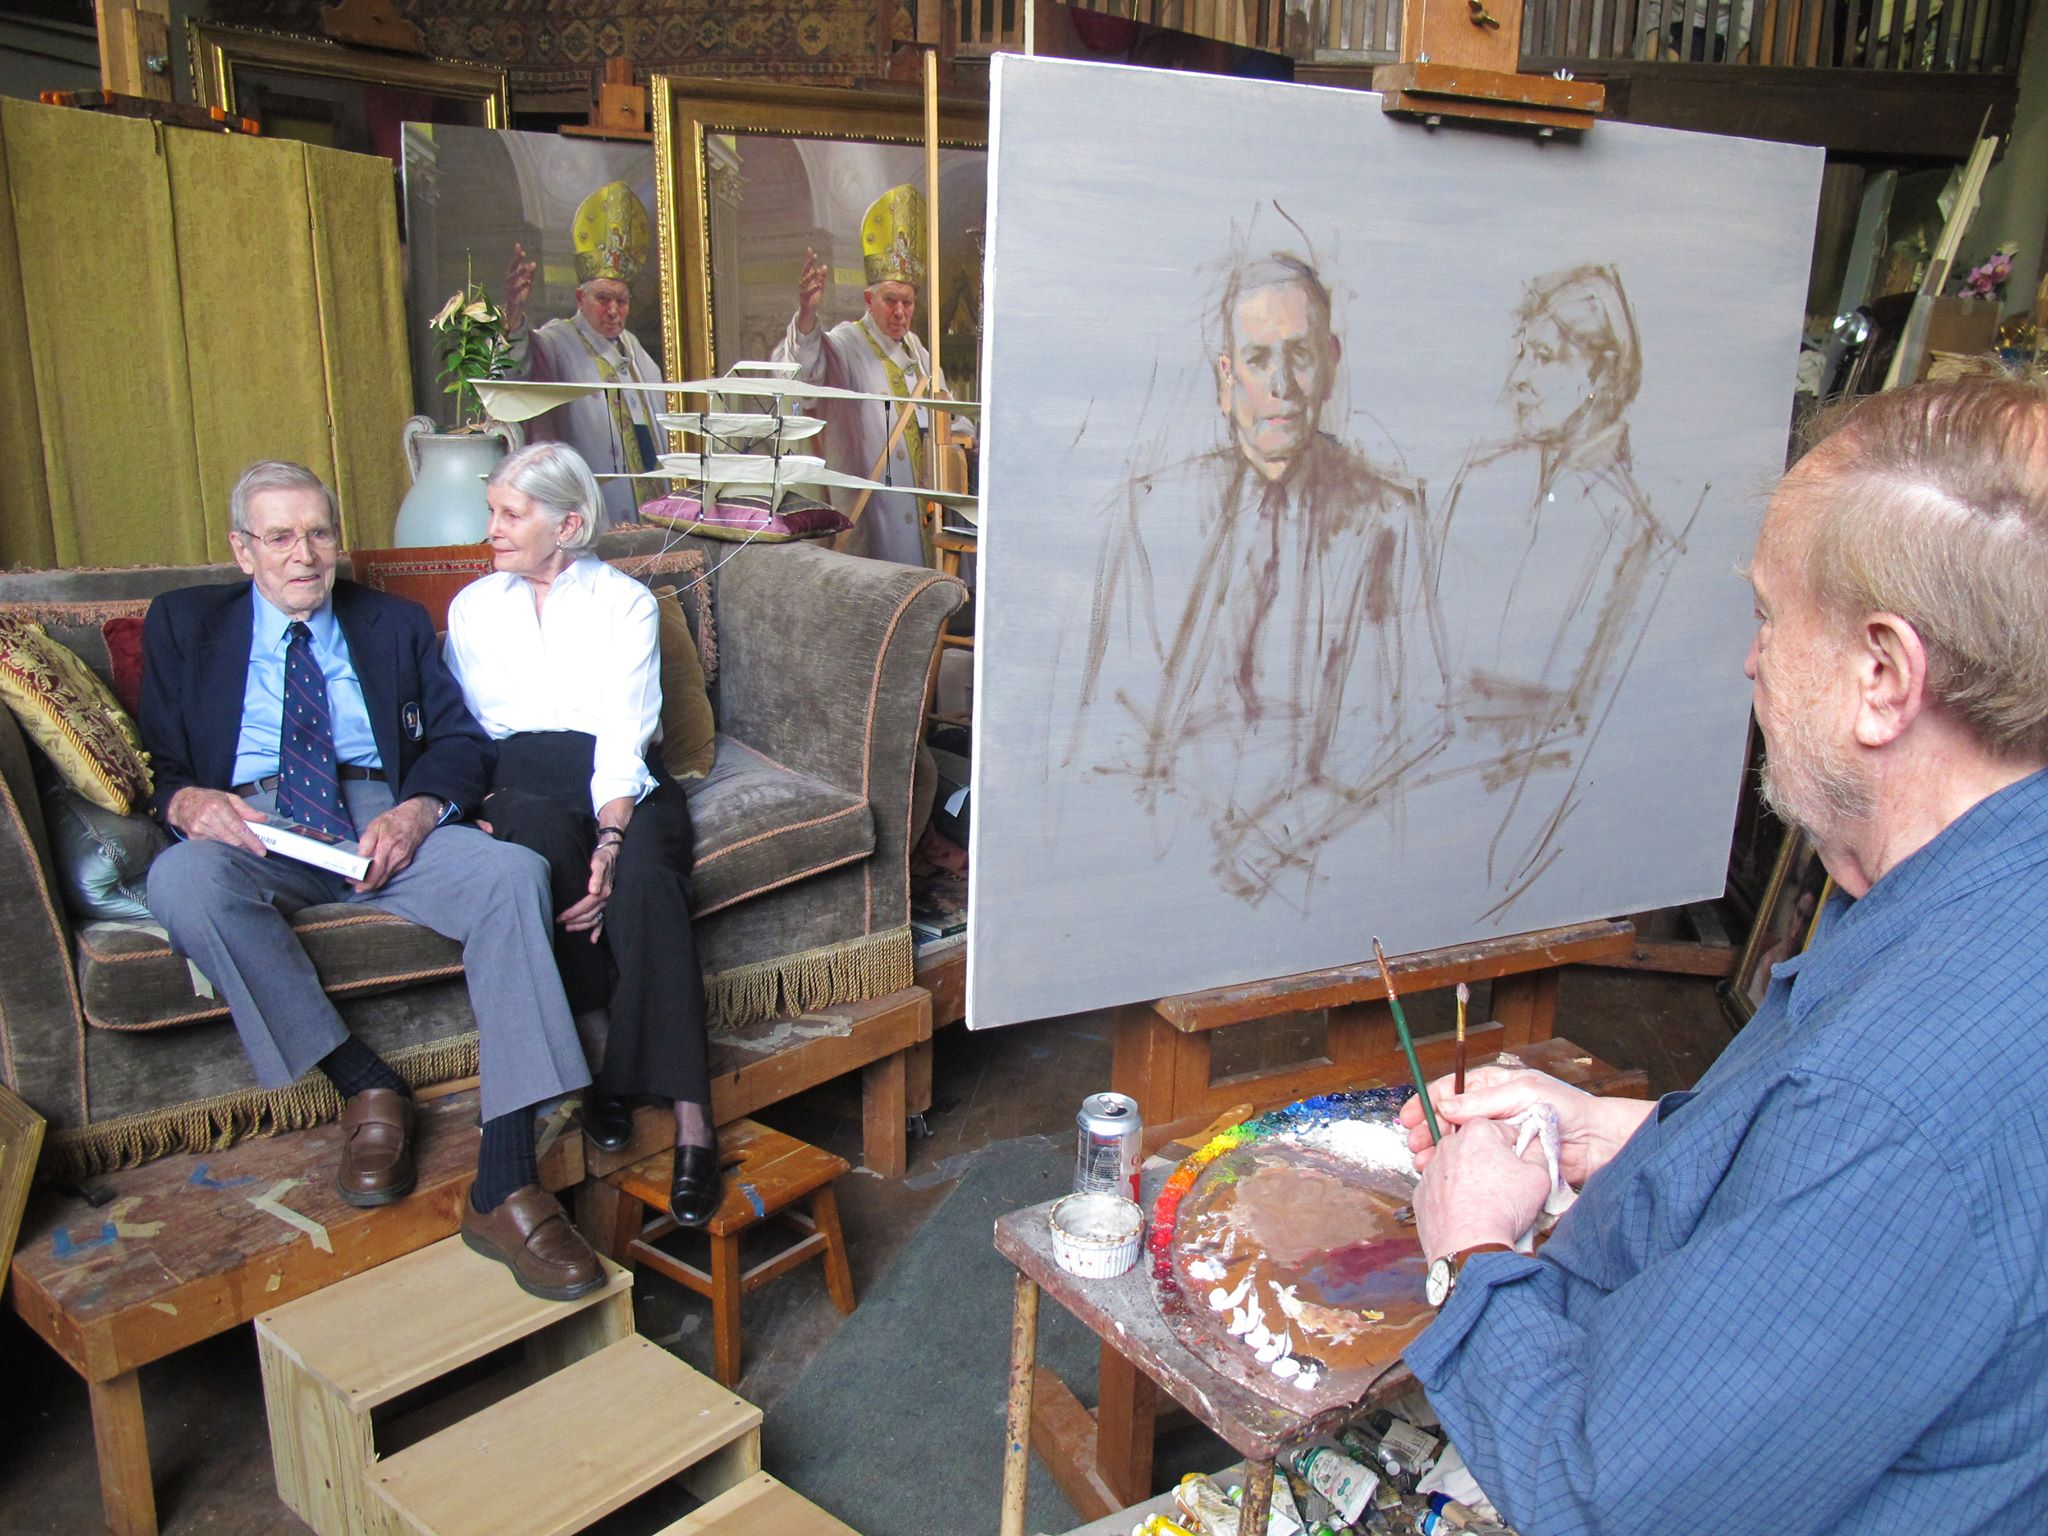 Nelson Shanks paints a portrait of Henry and Lee Rowan